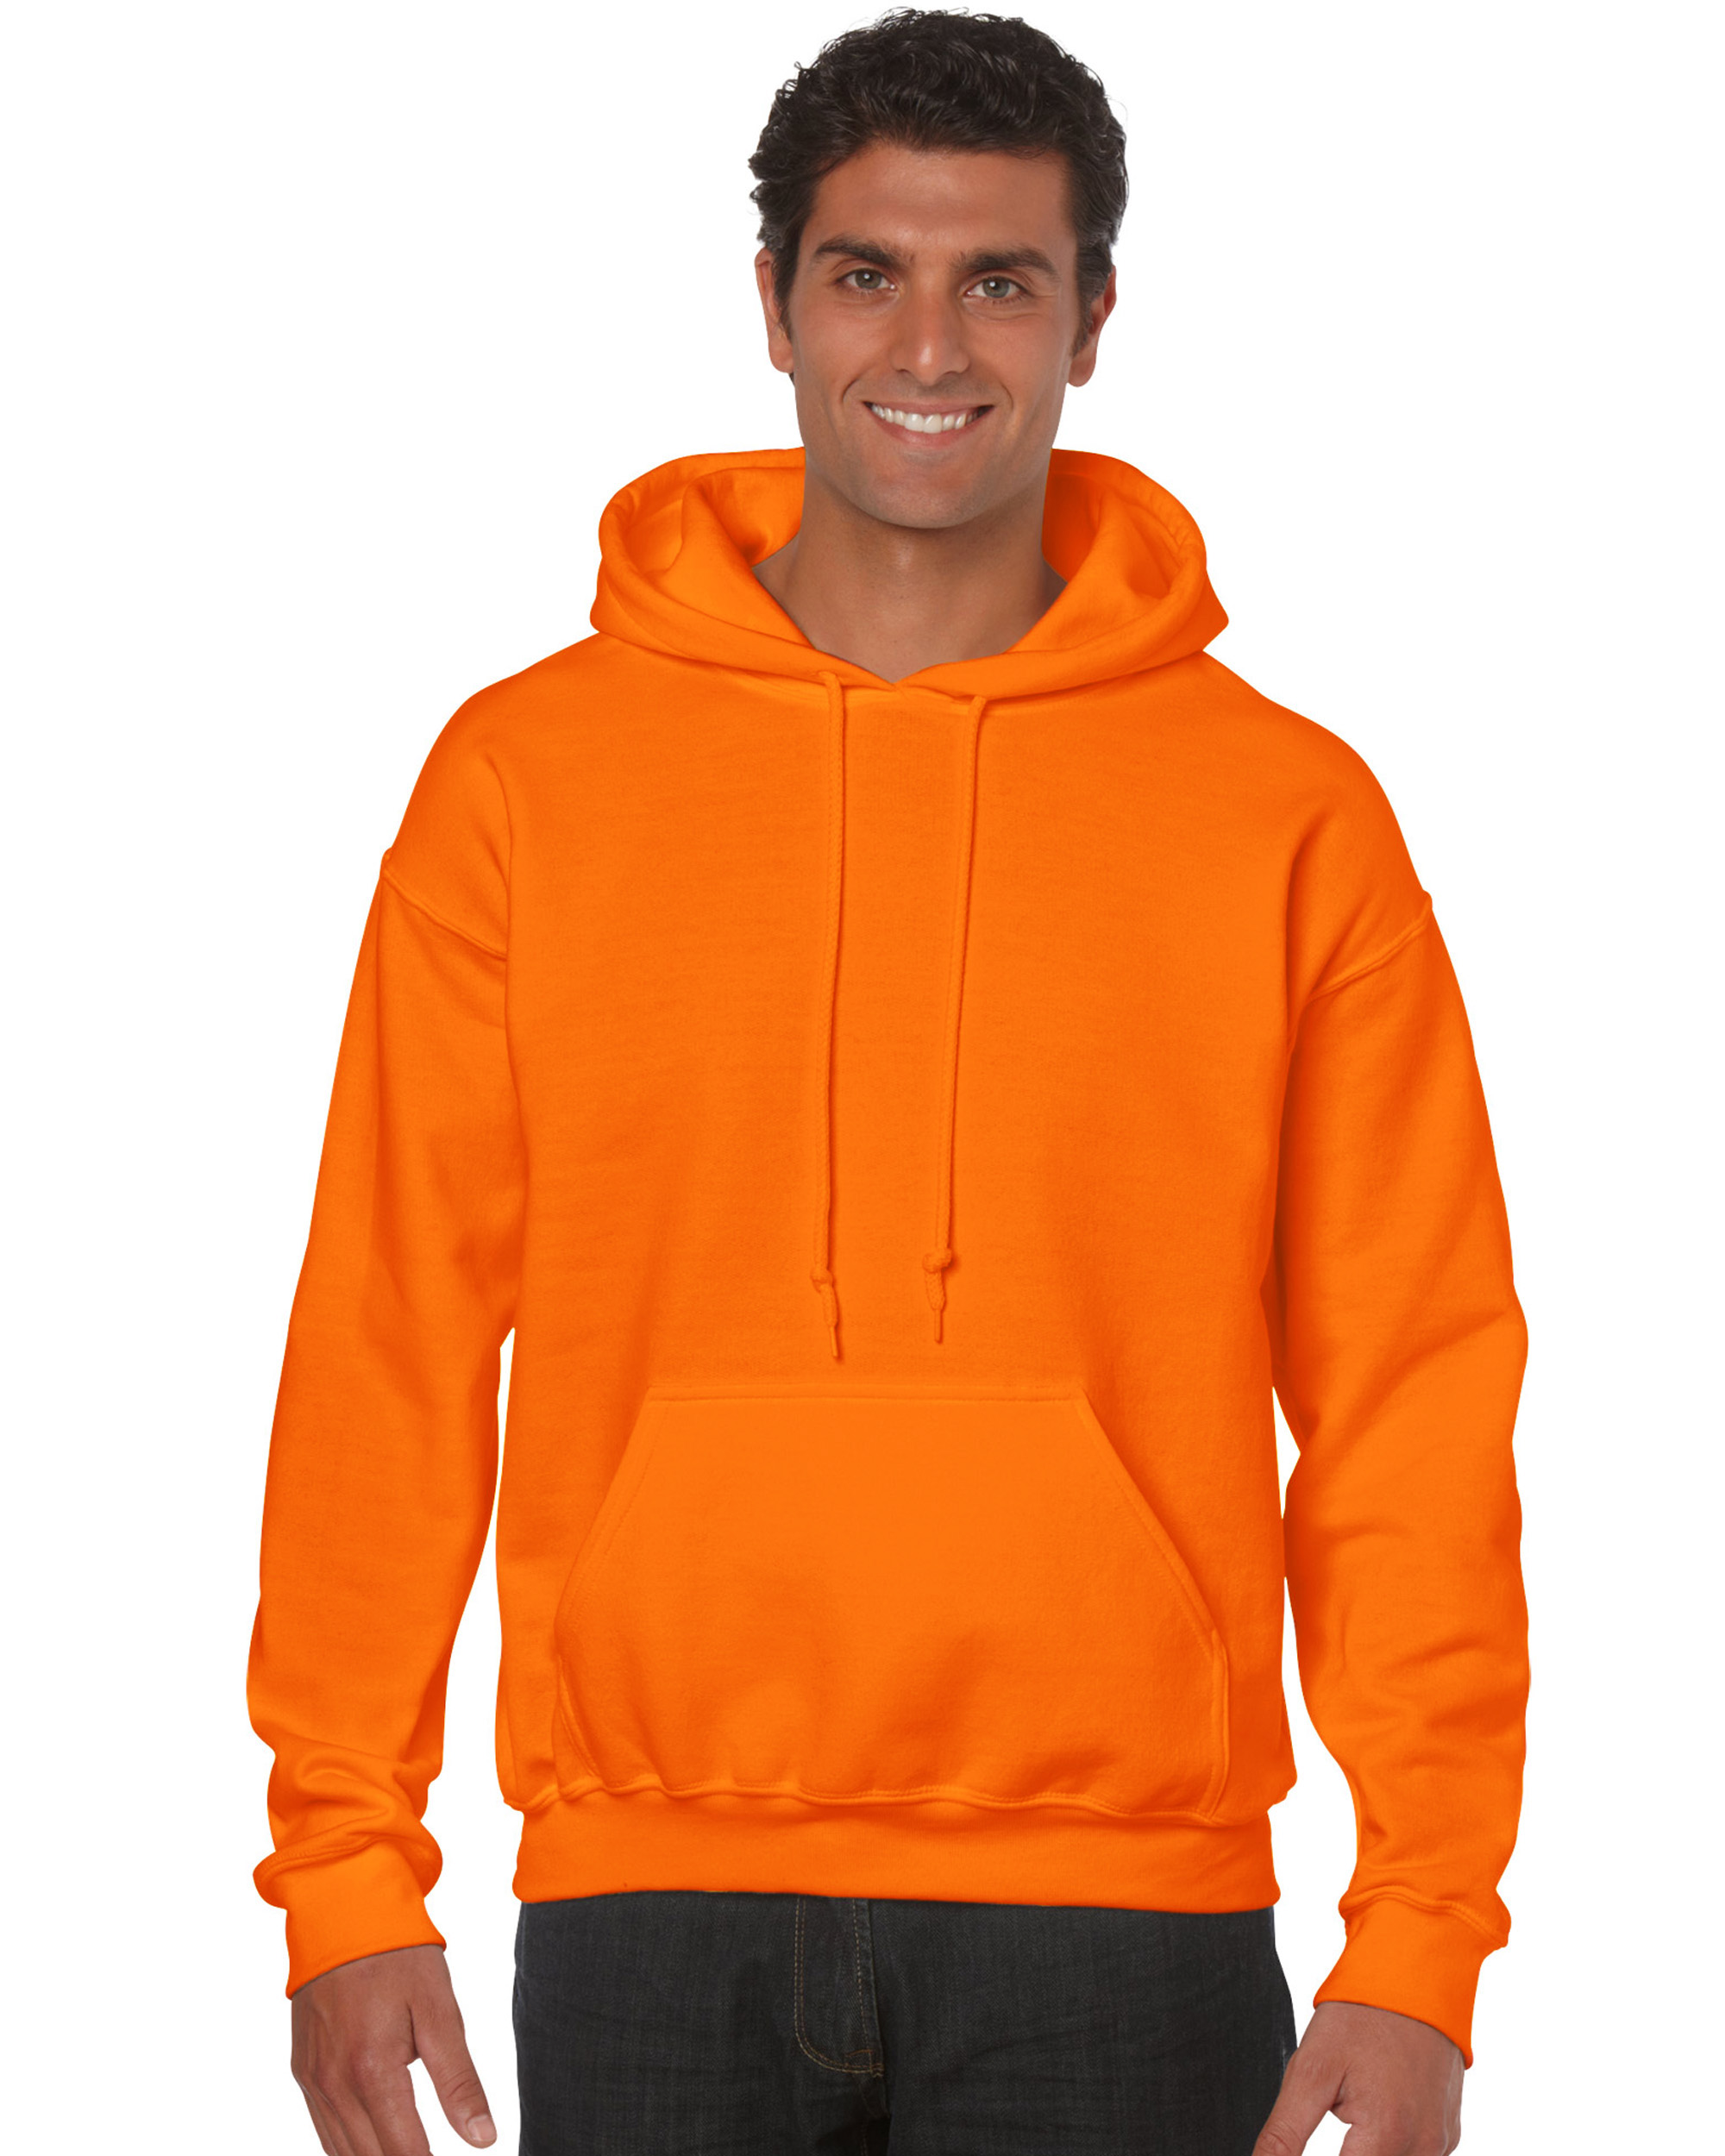 Bluza Heavy Blend Hooded Adult GILDAN 18500 - Gildan_18500_29 - Kolor: Safety orange